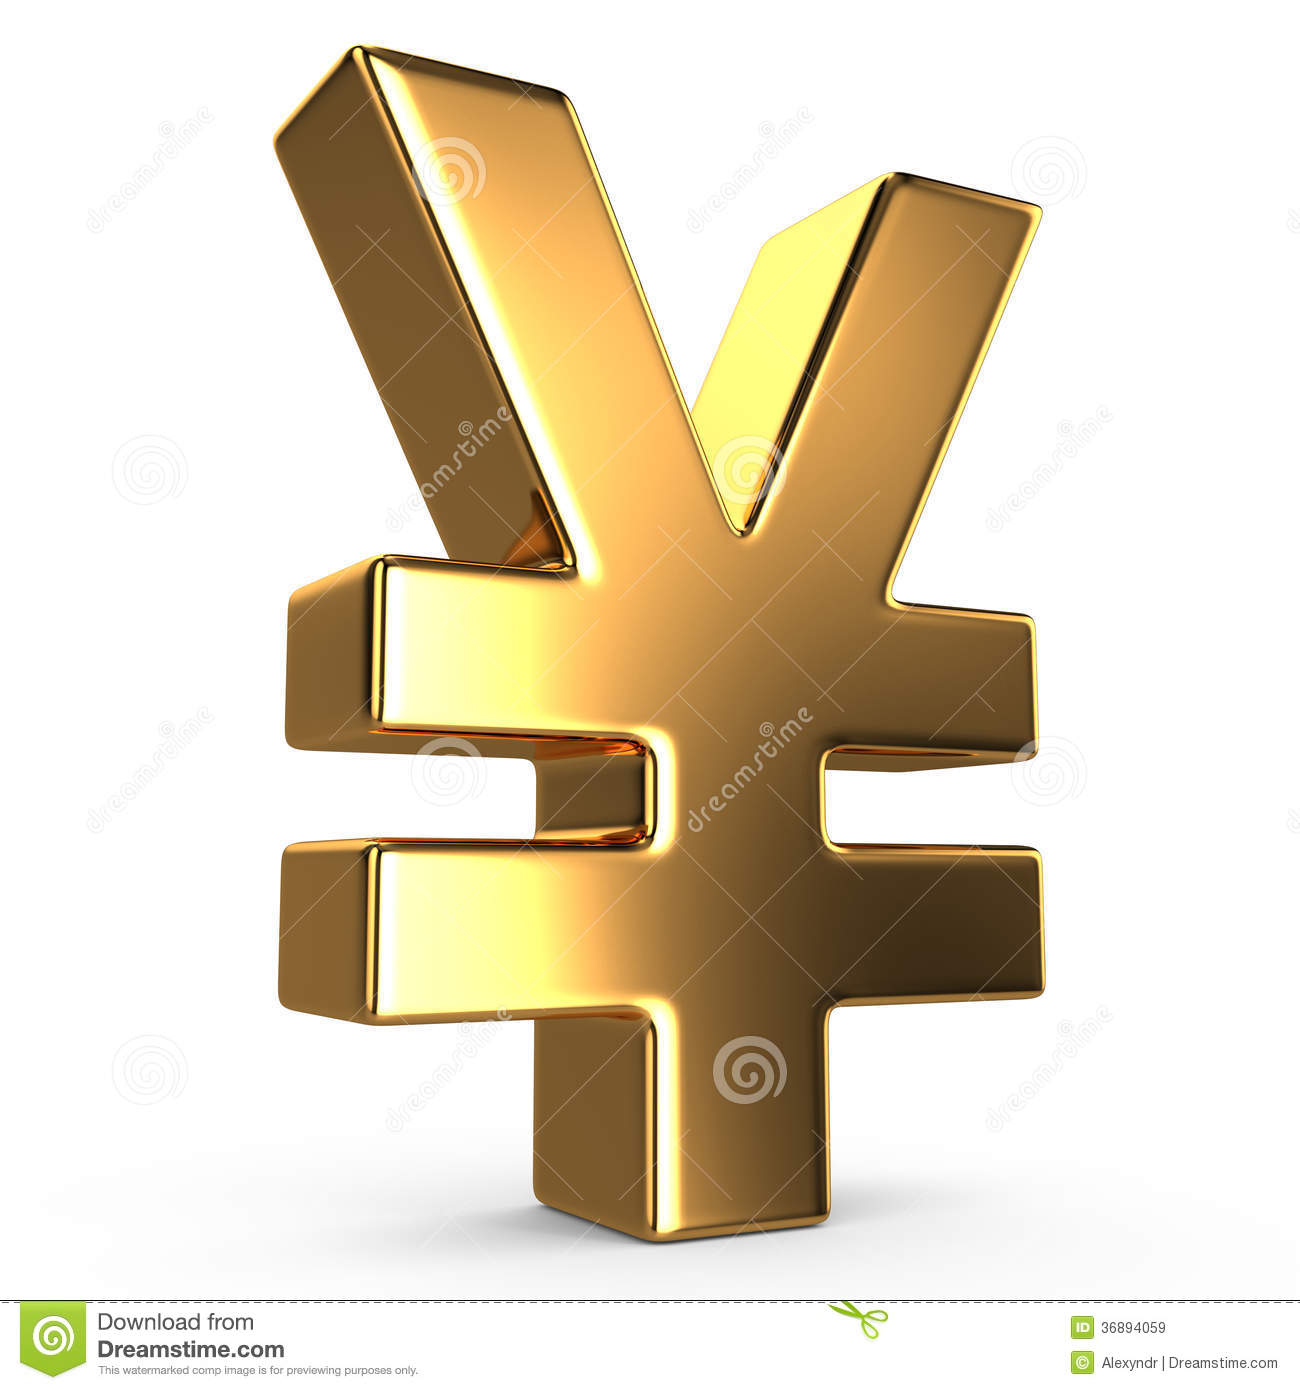 Sign Of Yuan Royalty Free Stock Images - Image: 36894059